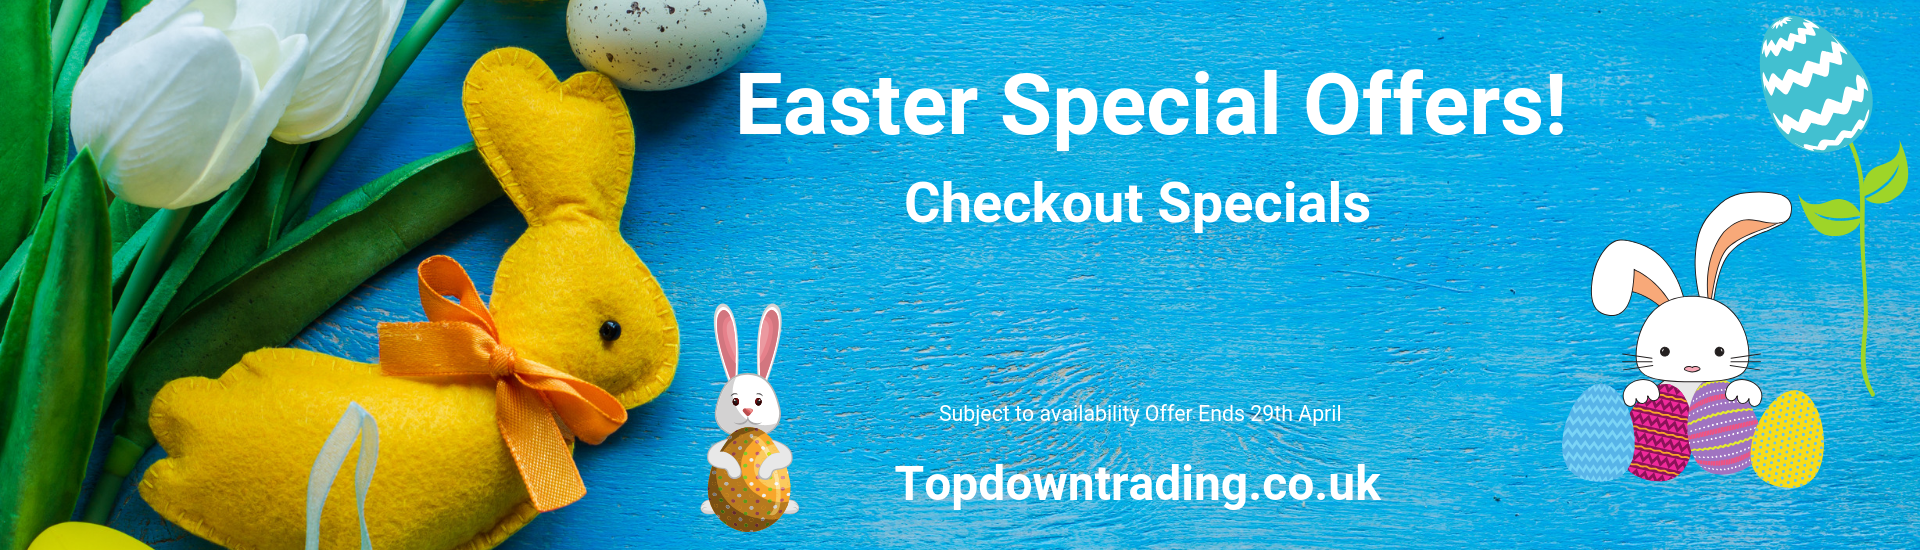 Easter Special Offer Sale